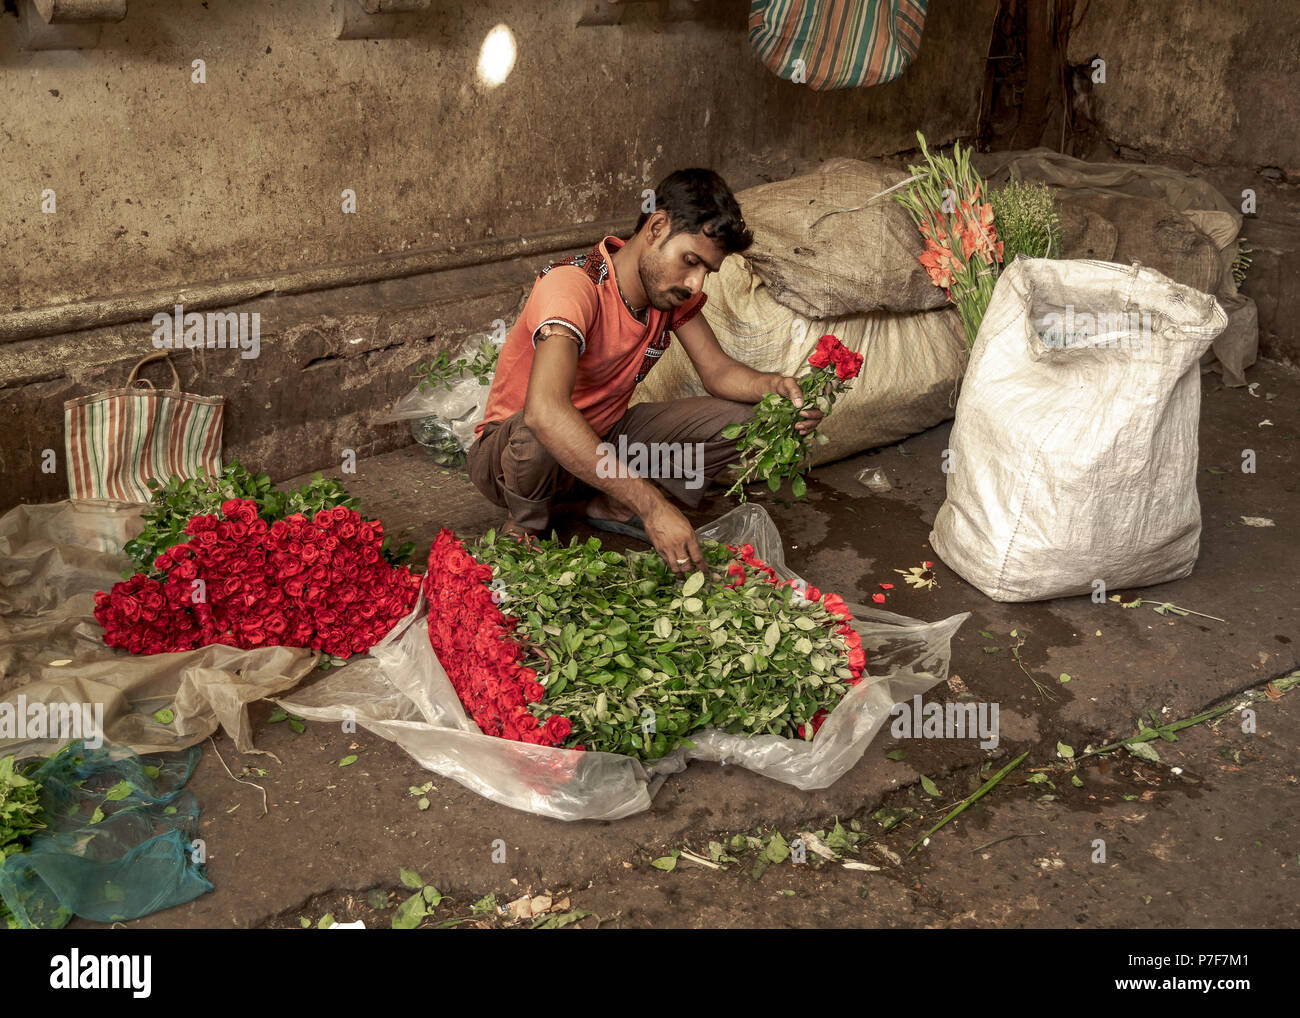 May 27,2018. Kolkata, India. Flower whole sellers busy with flower binding at Flower Market or Mullik Bazar , Kolkata. Stock Photo